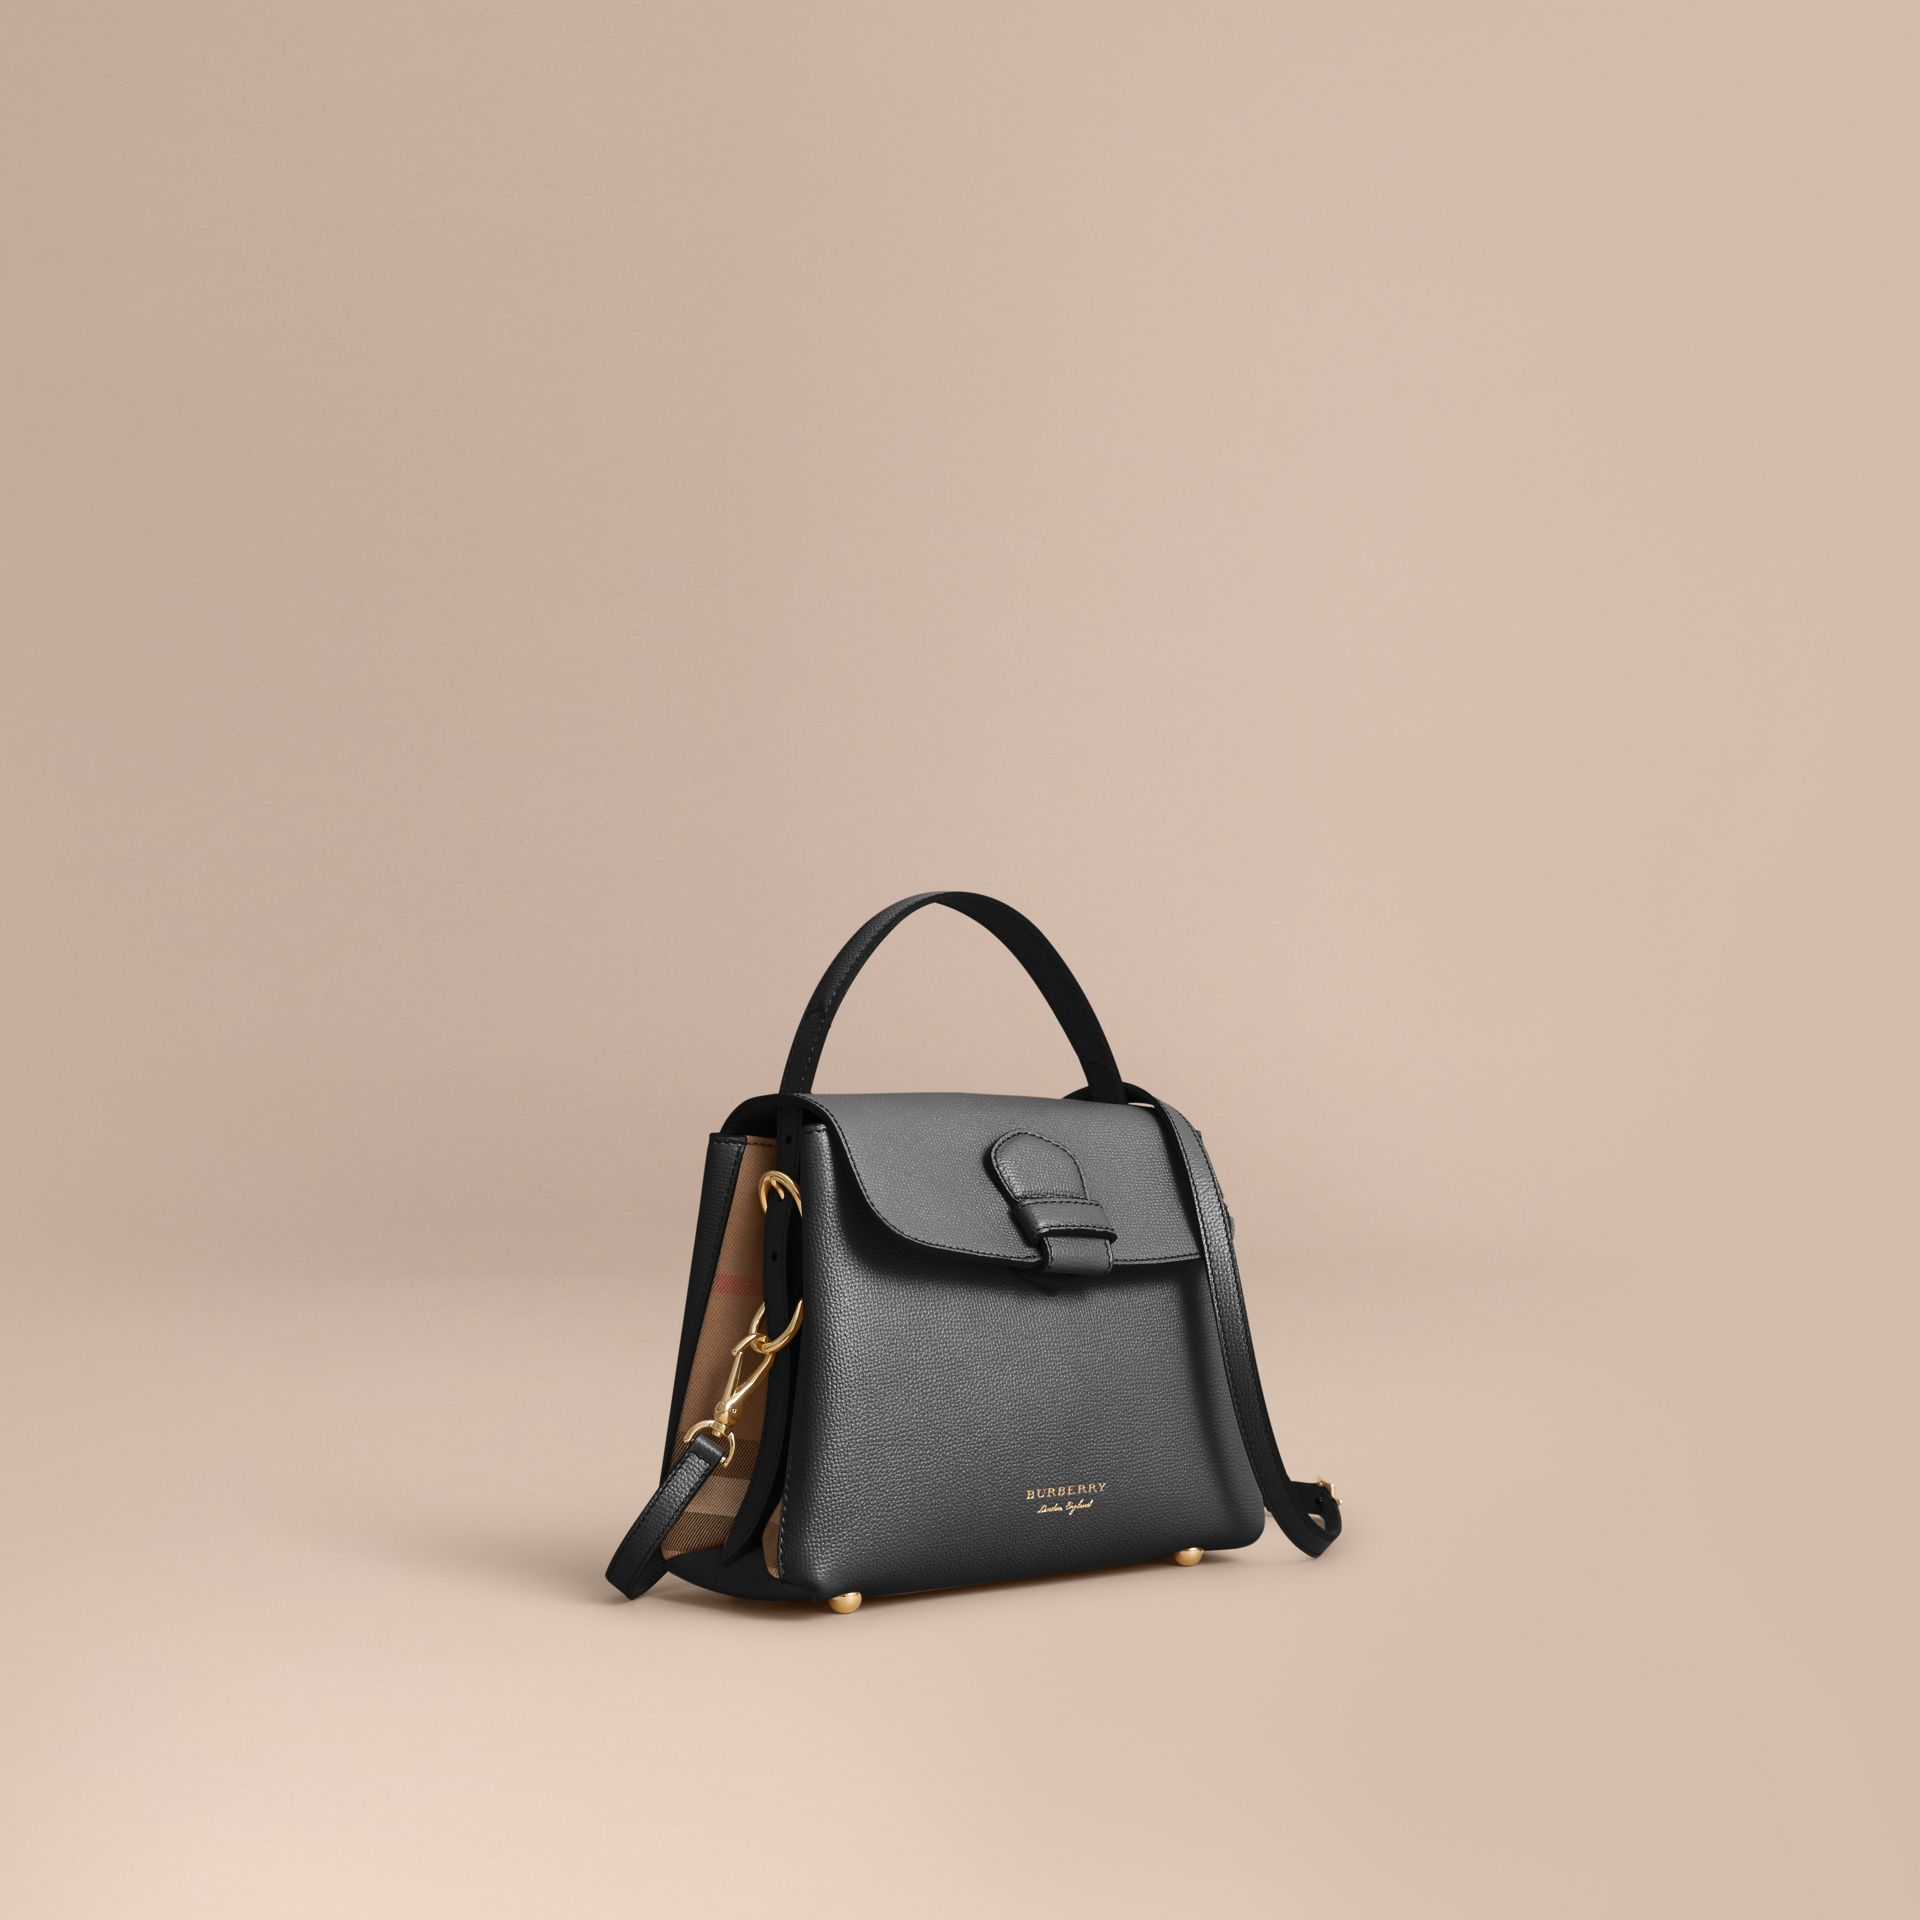 Small Grainy Leather and House Check Tote Bag in Black - Women | Burberry - gallery image 1